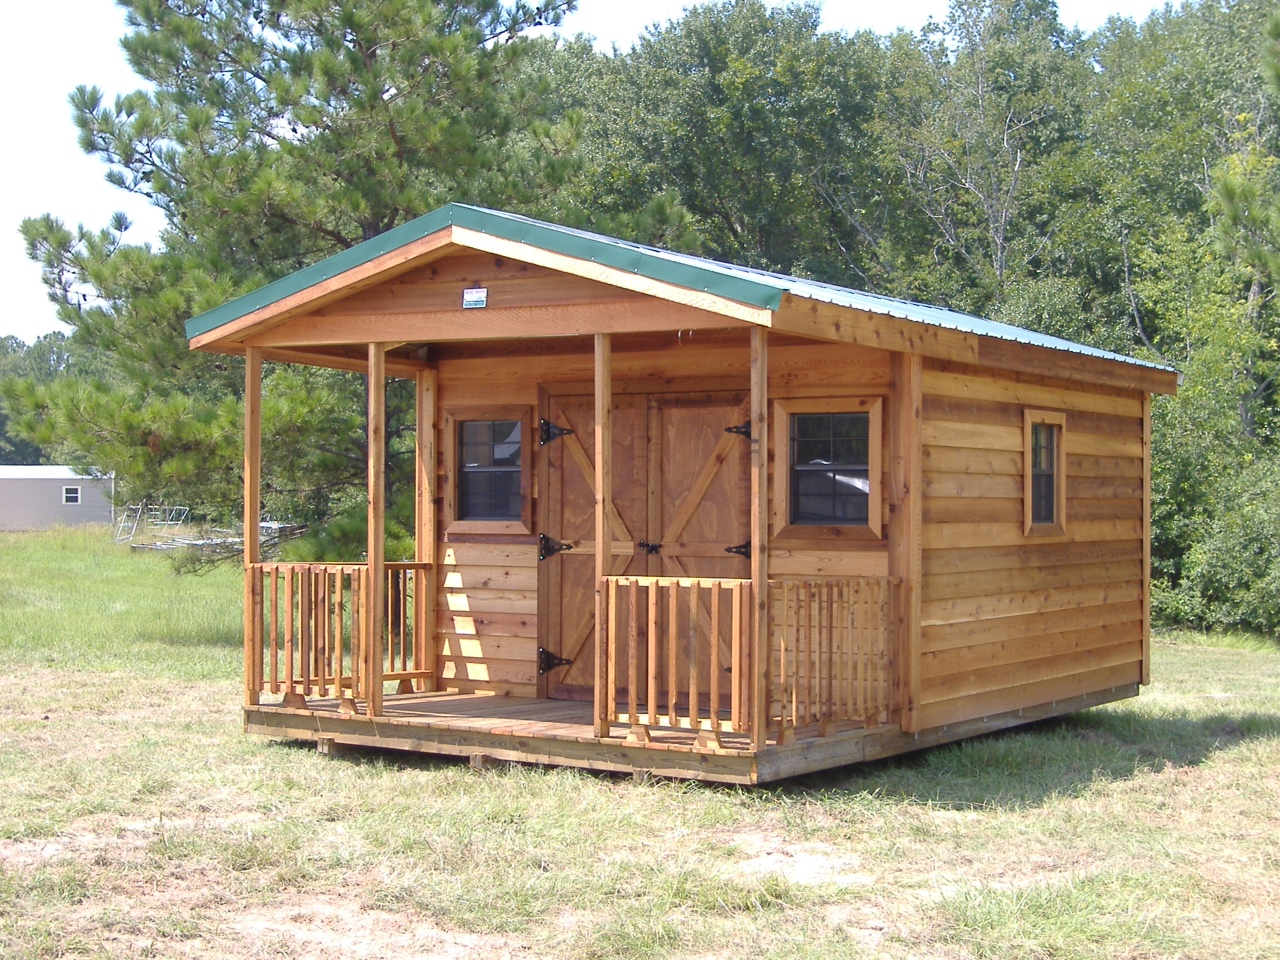 cedar sheds ... and a certain number of windows and electrical outlets depending on PUXEOME